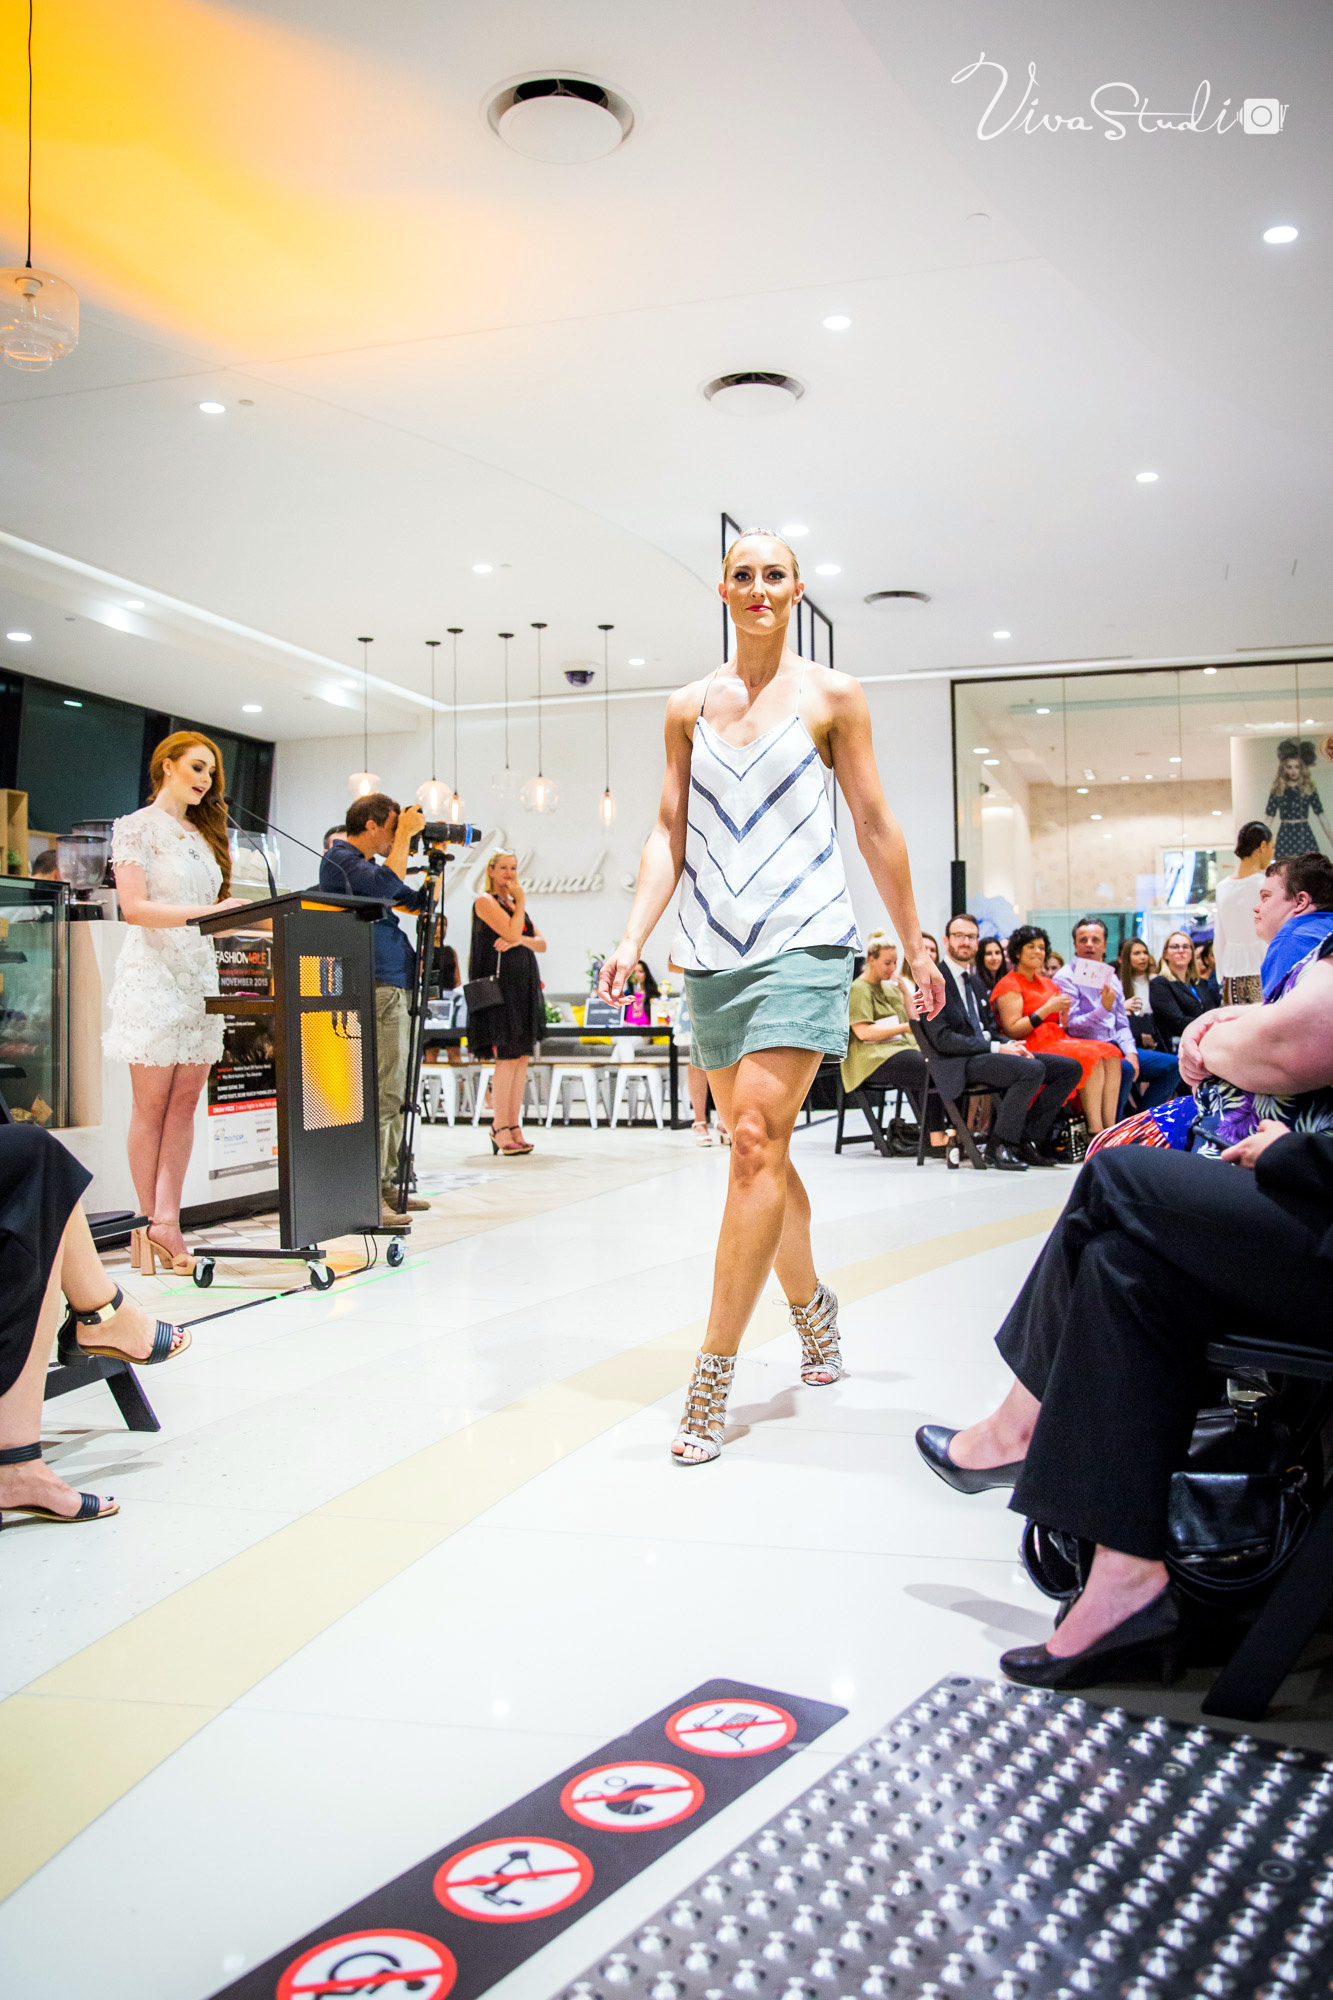 VivaStudio_Design_Photograpphy_Brisbane_Event_Fashionable_20151105_0149